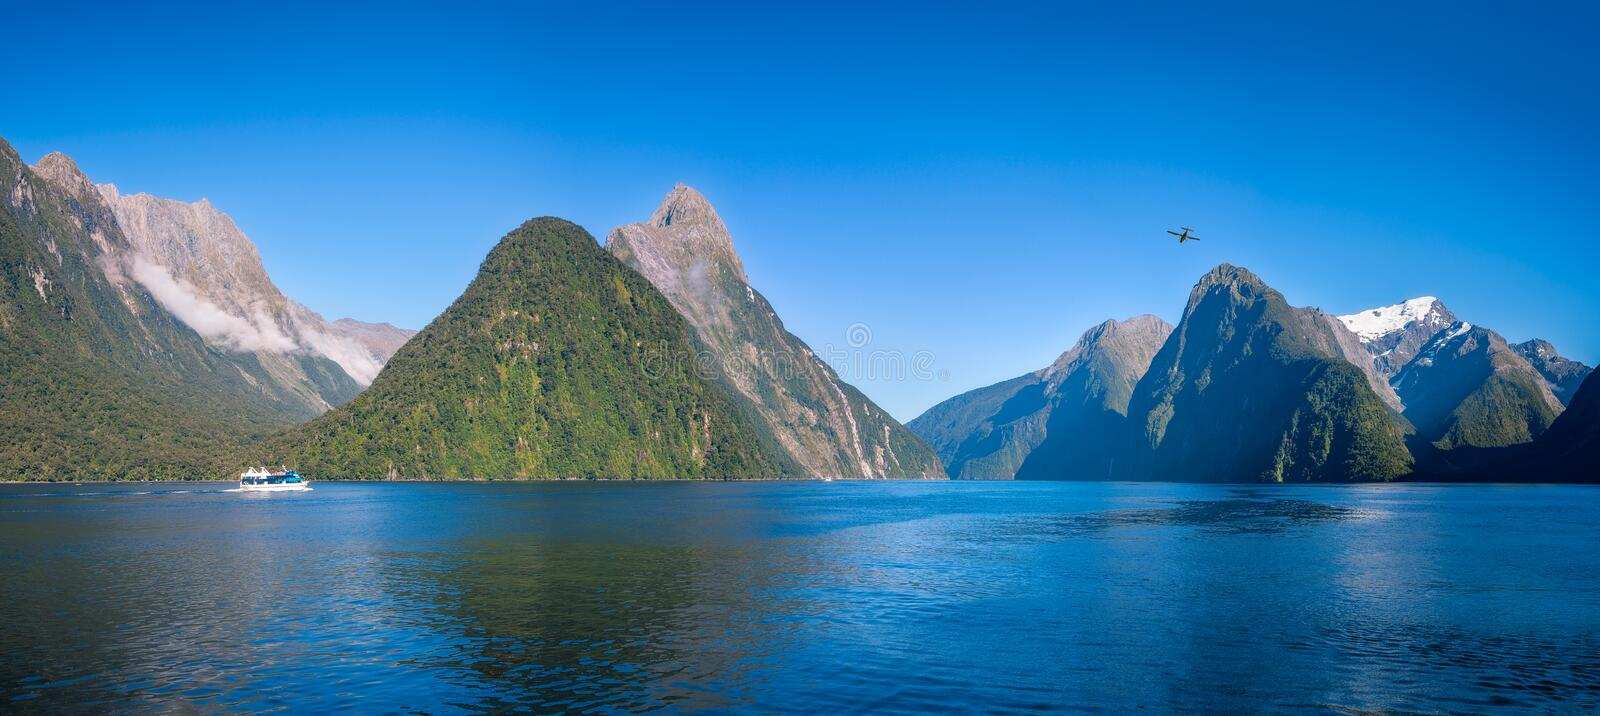 A small boat in the morning at Milford Sound stock images